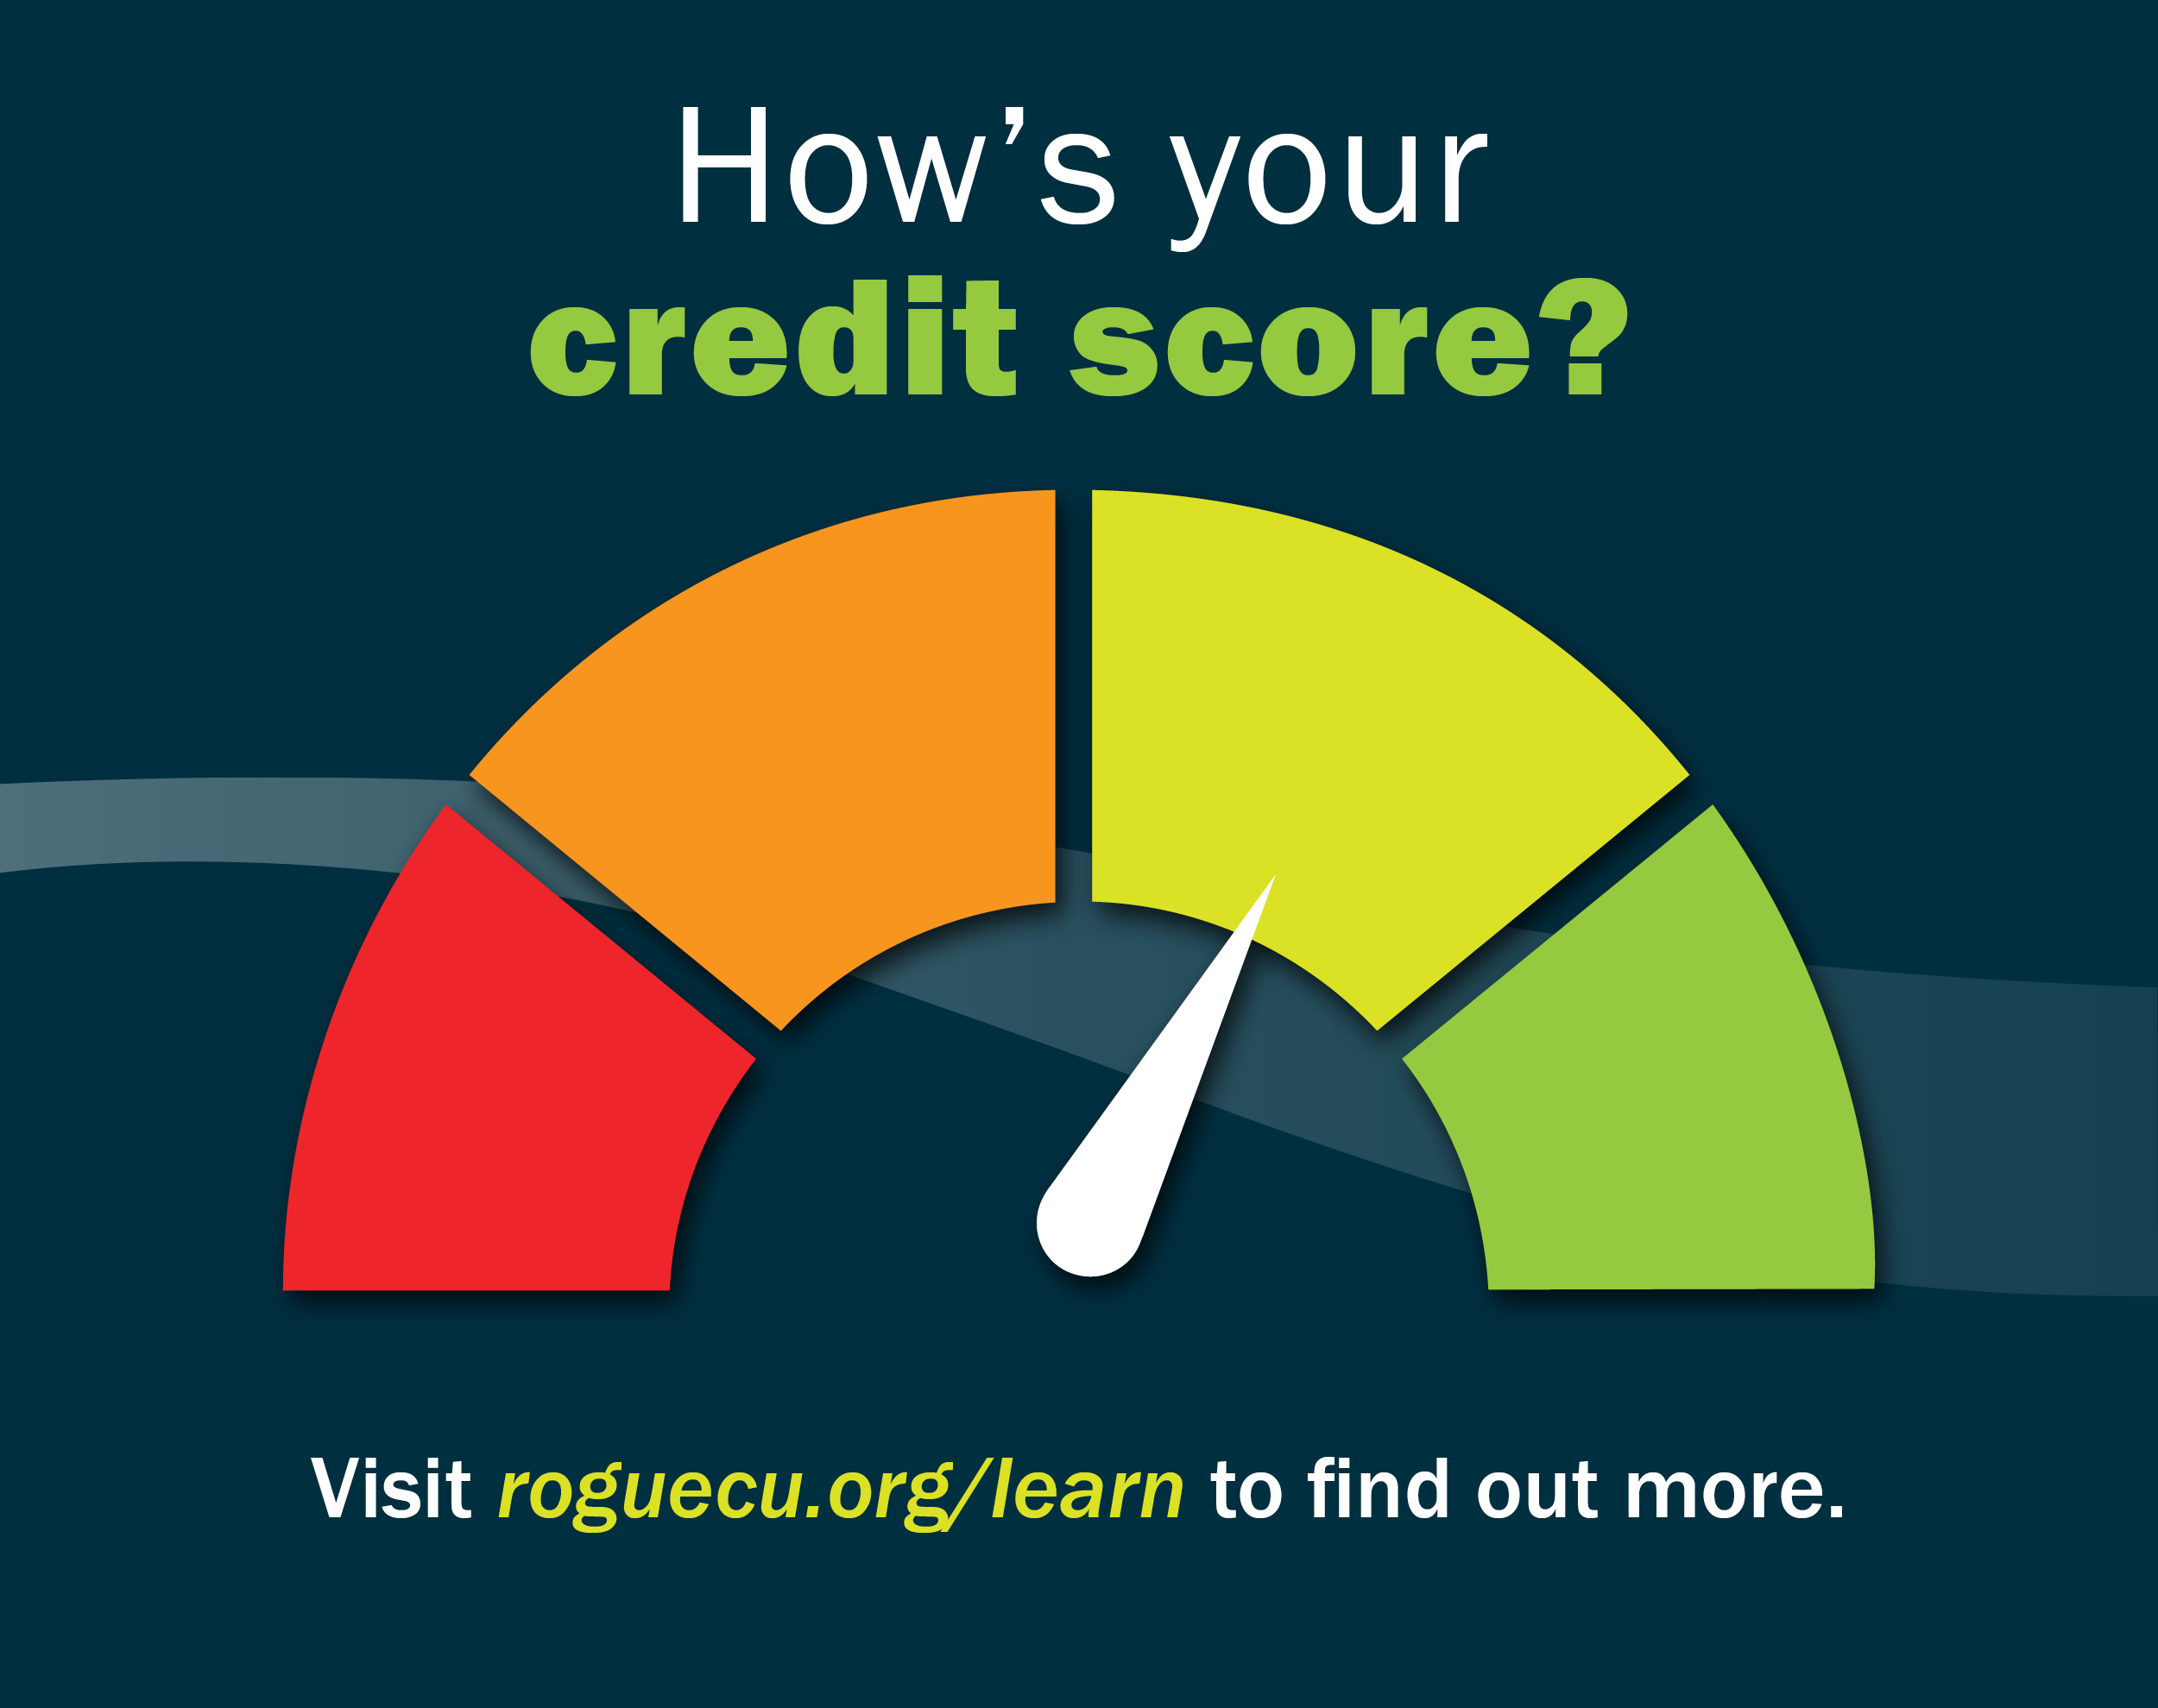 How's Your Credit Score?